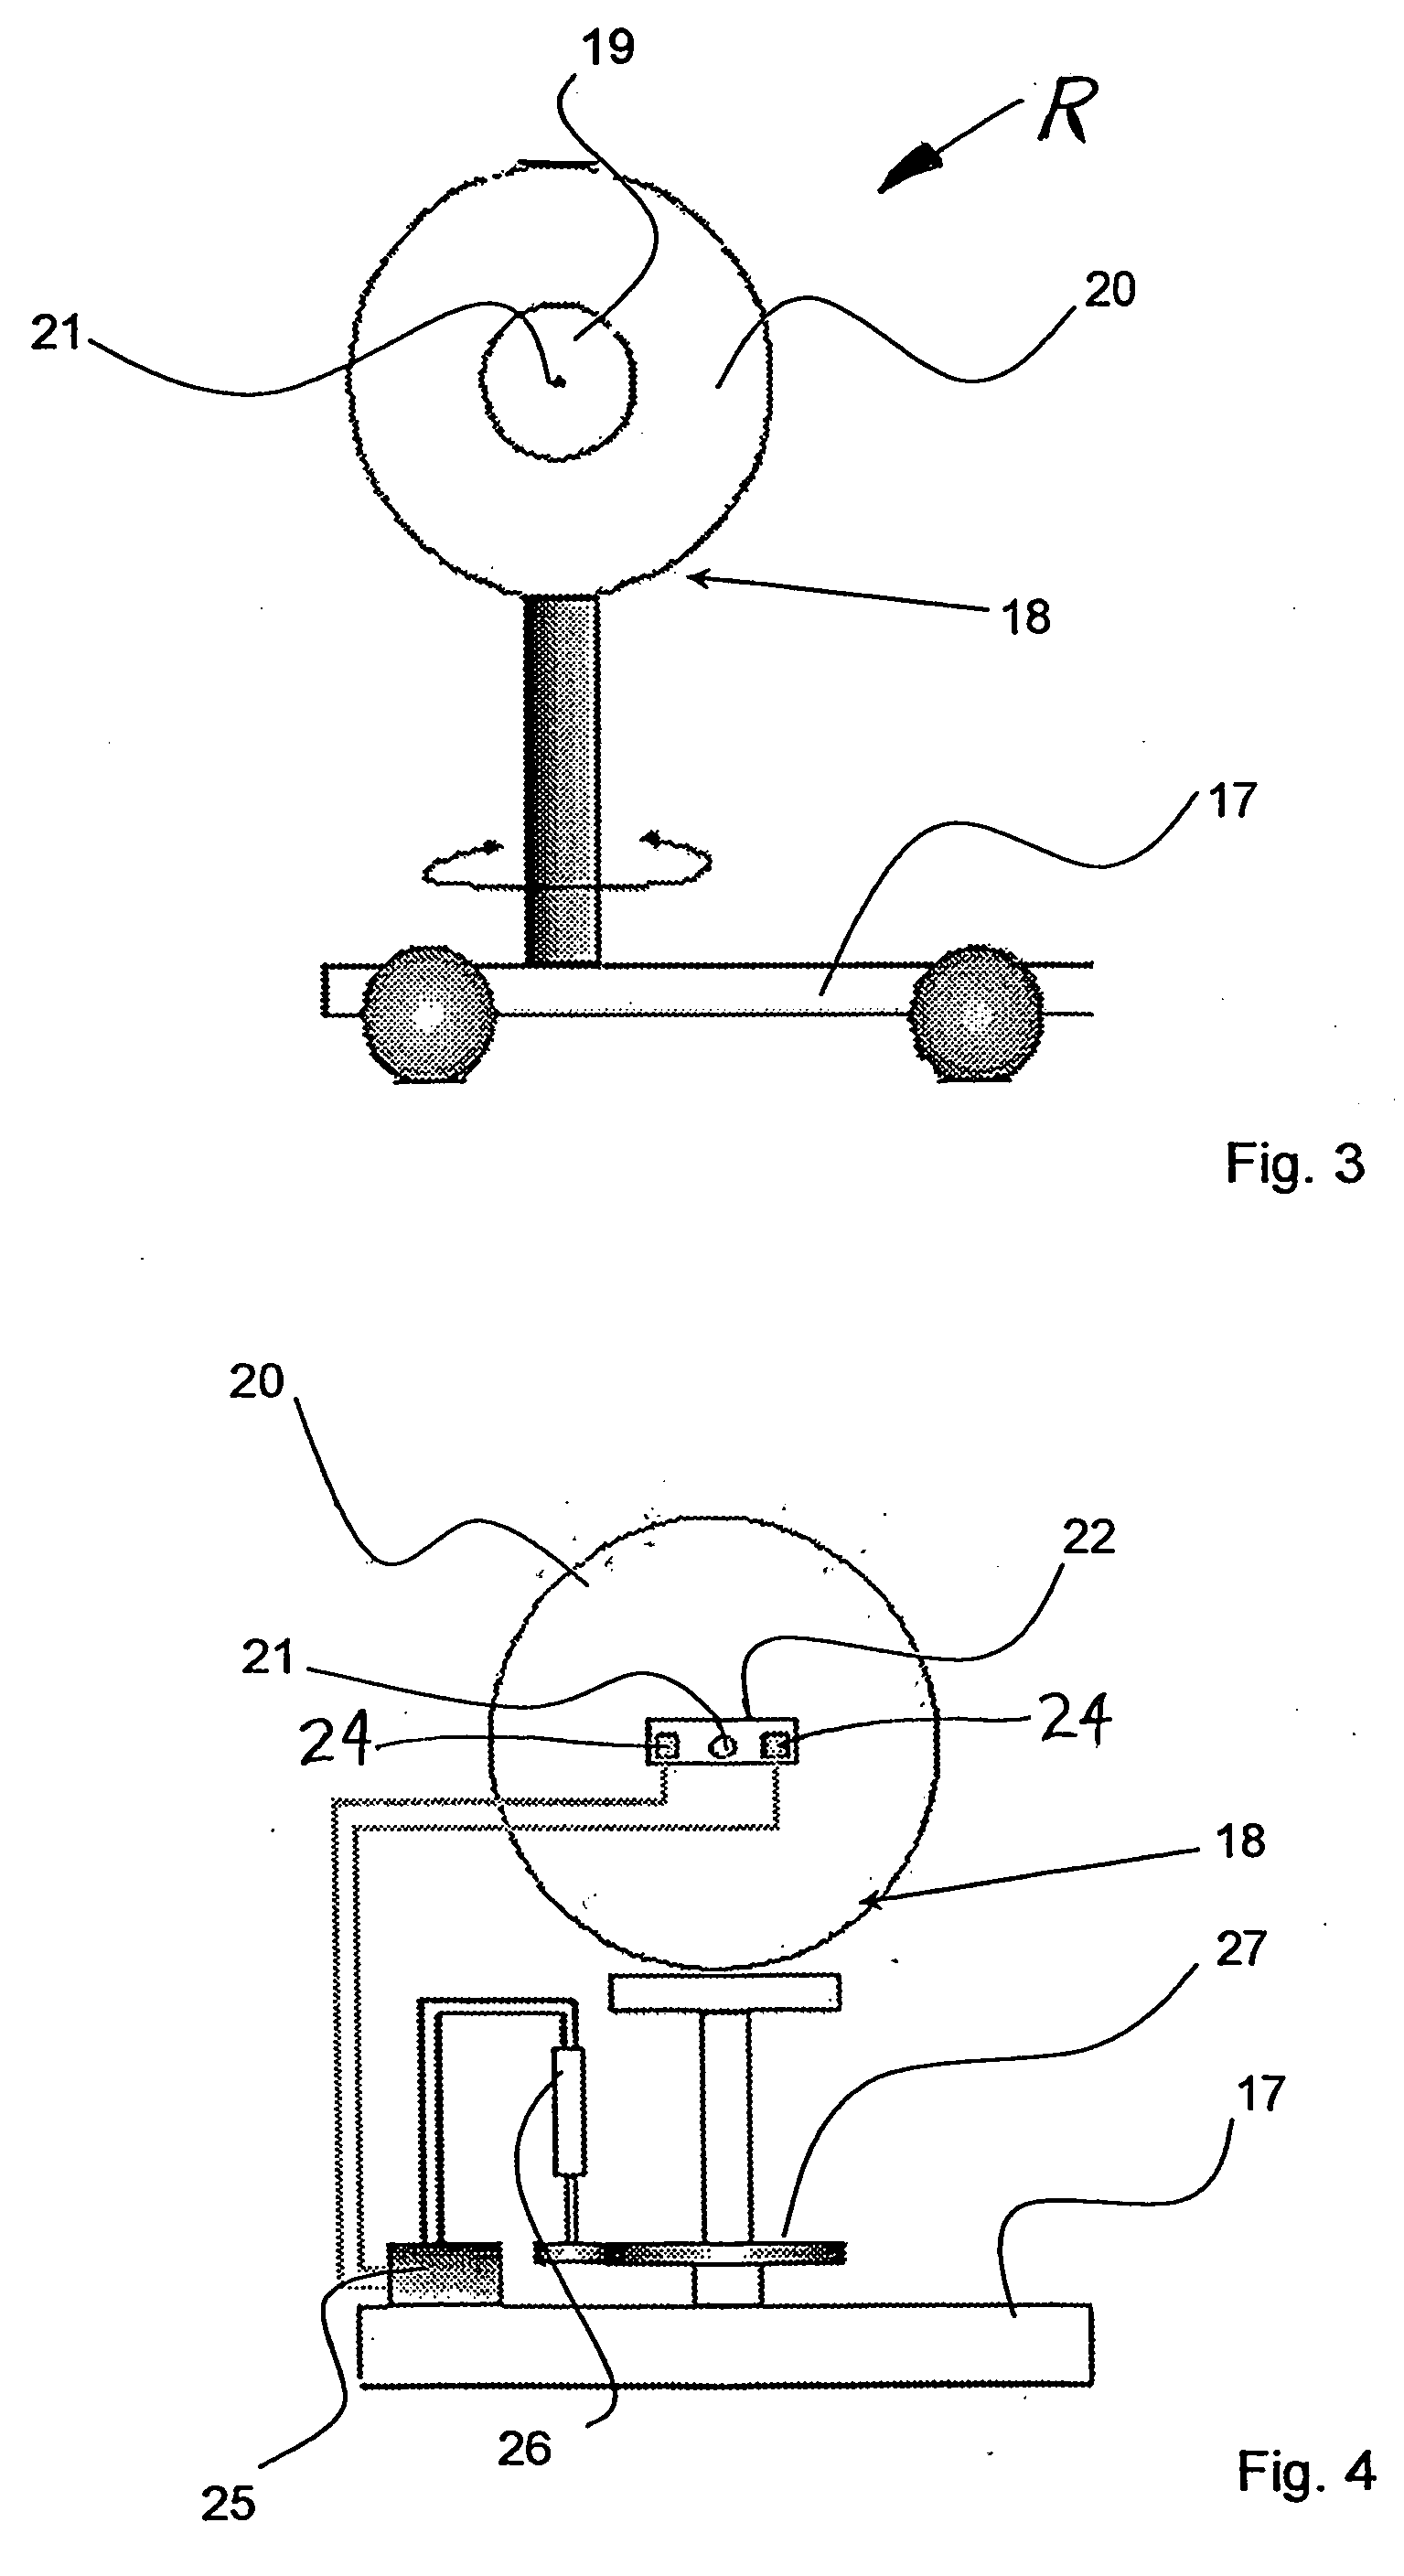 patent us20050190427 - method and apparatus for transmitting energy via a laser beam